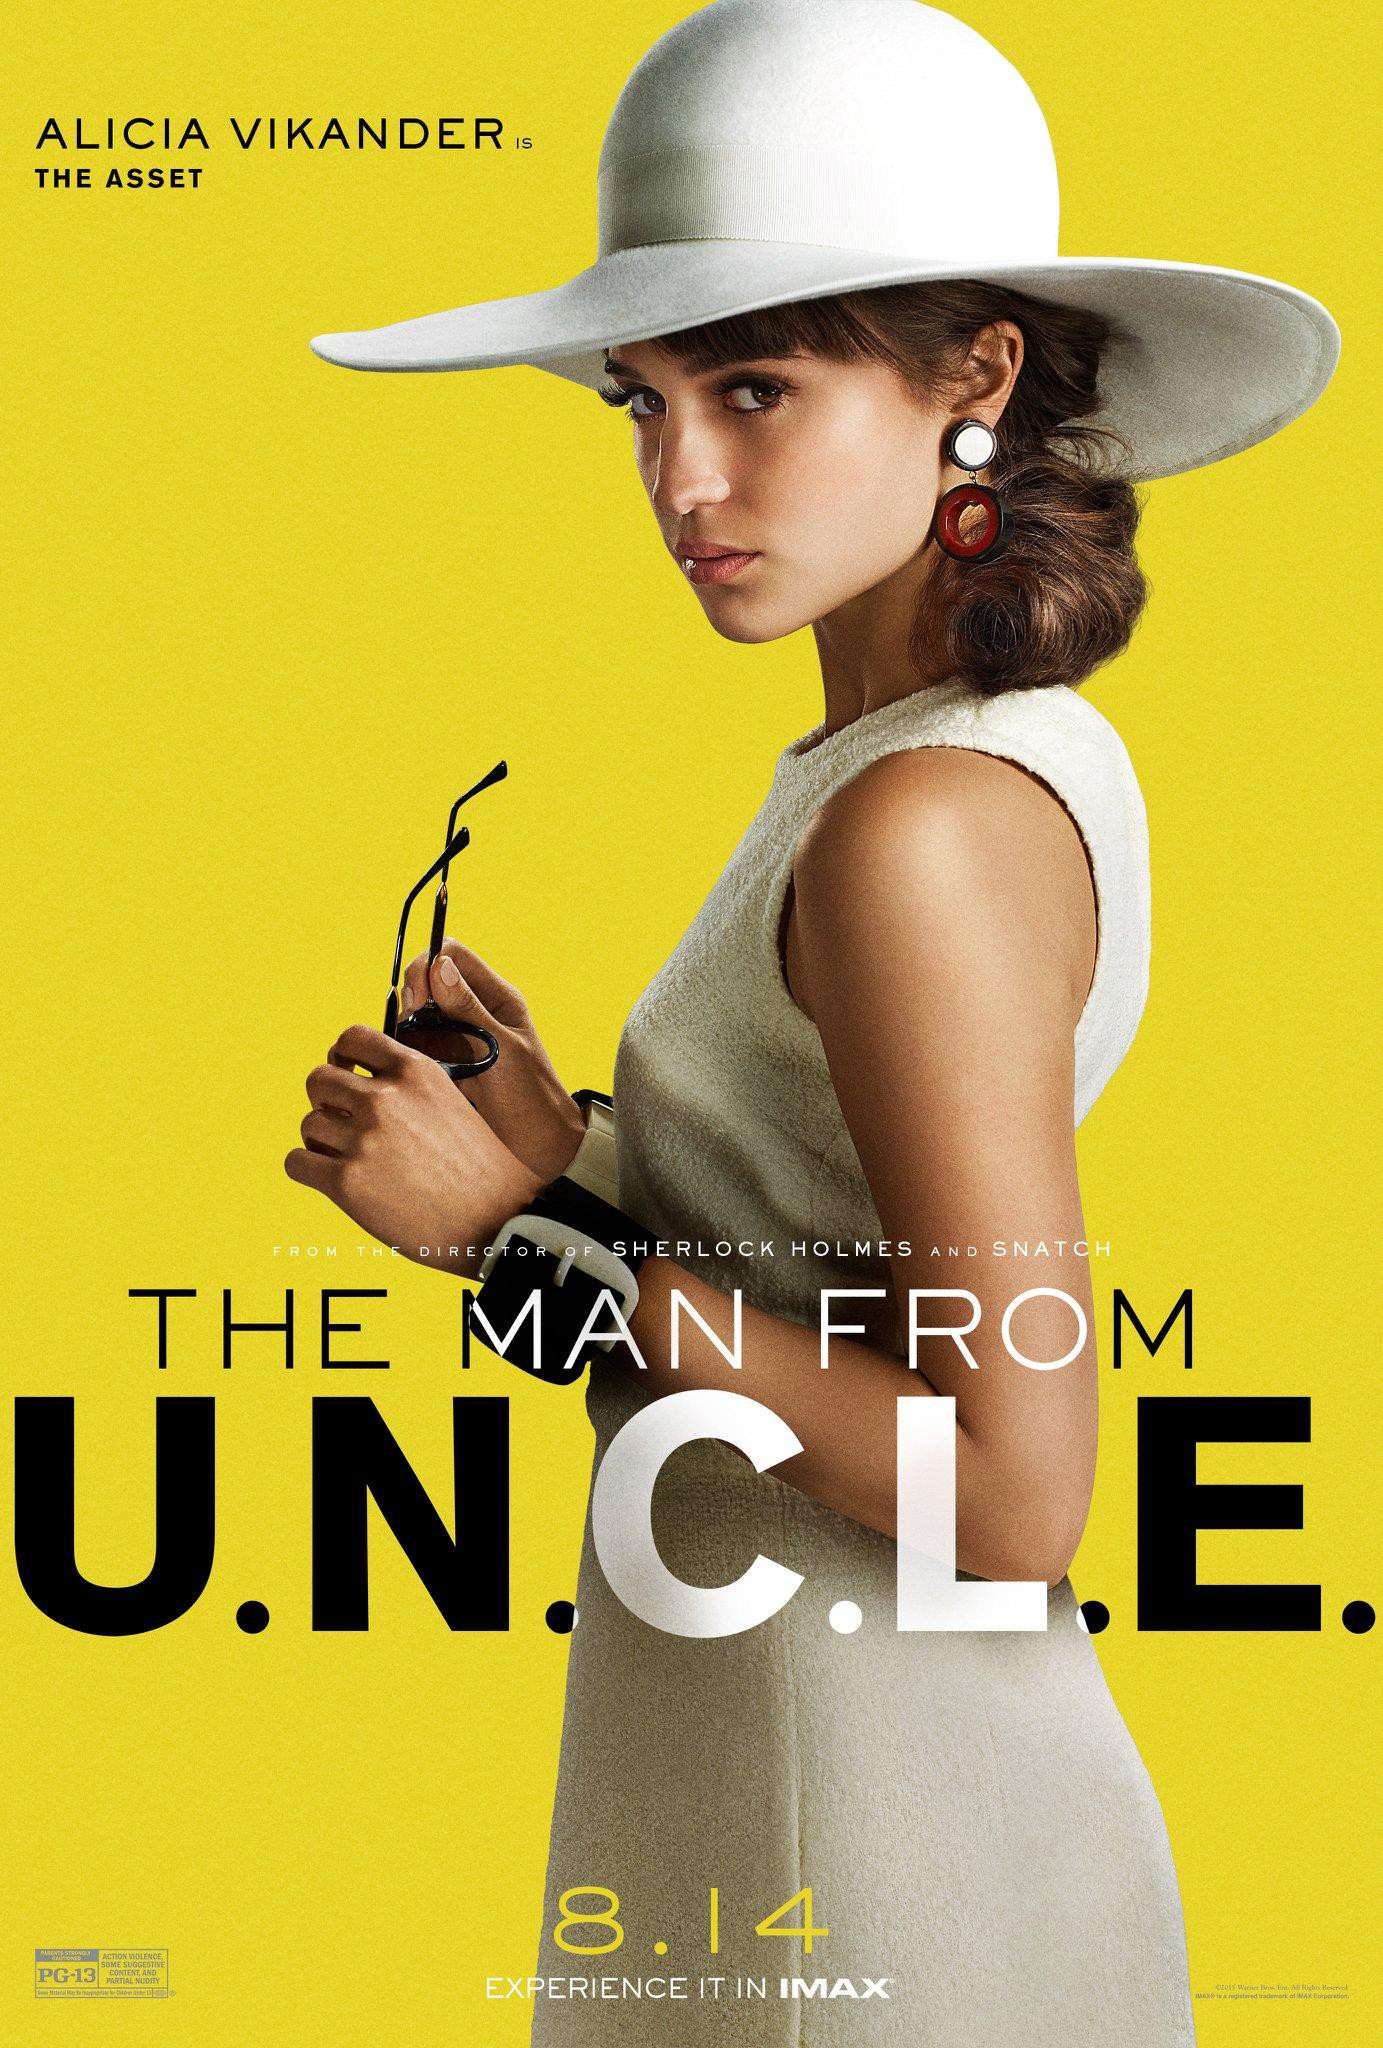 Image - The Man from U.N.C.L.E. (film) poster 6.jpg | The Man from ...